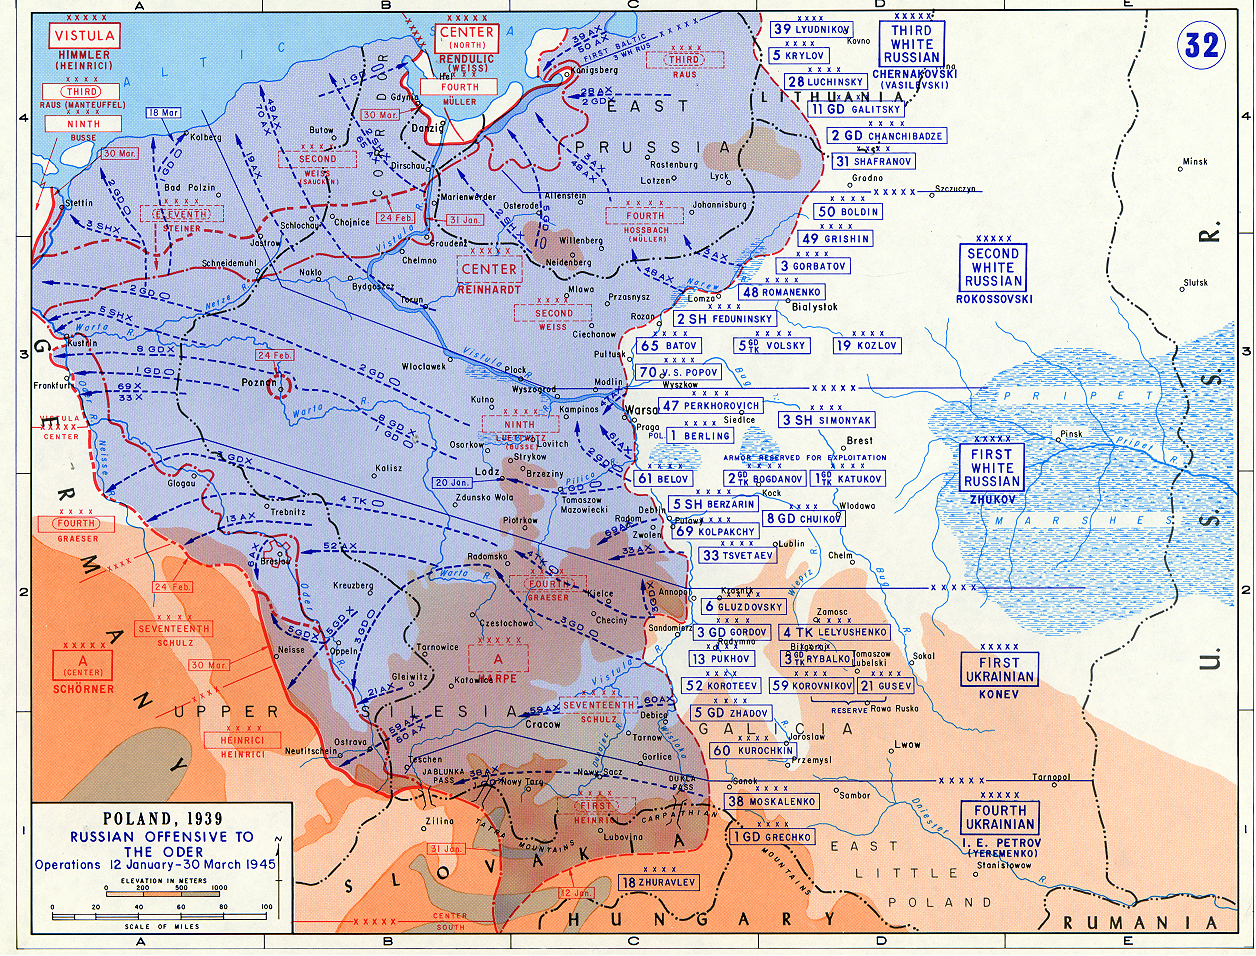 Map Of Russian Offensive To The Oder River JanuaryMarch - Map in russian